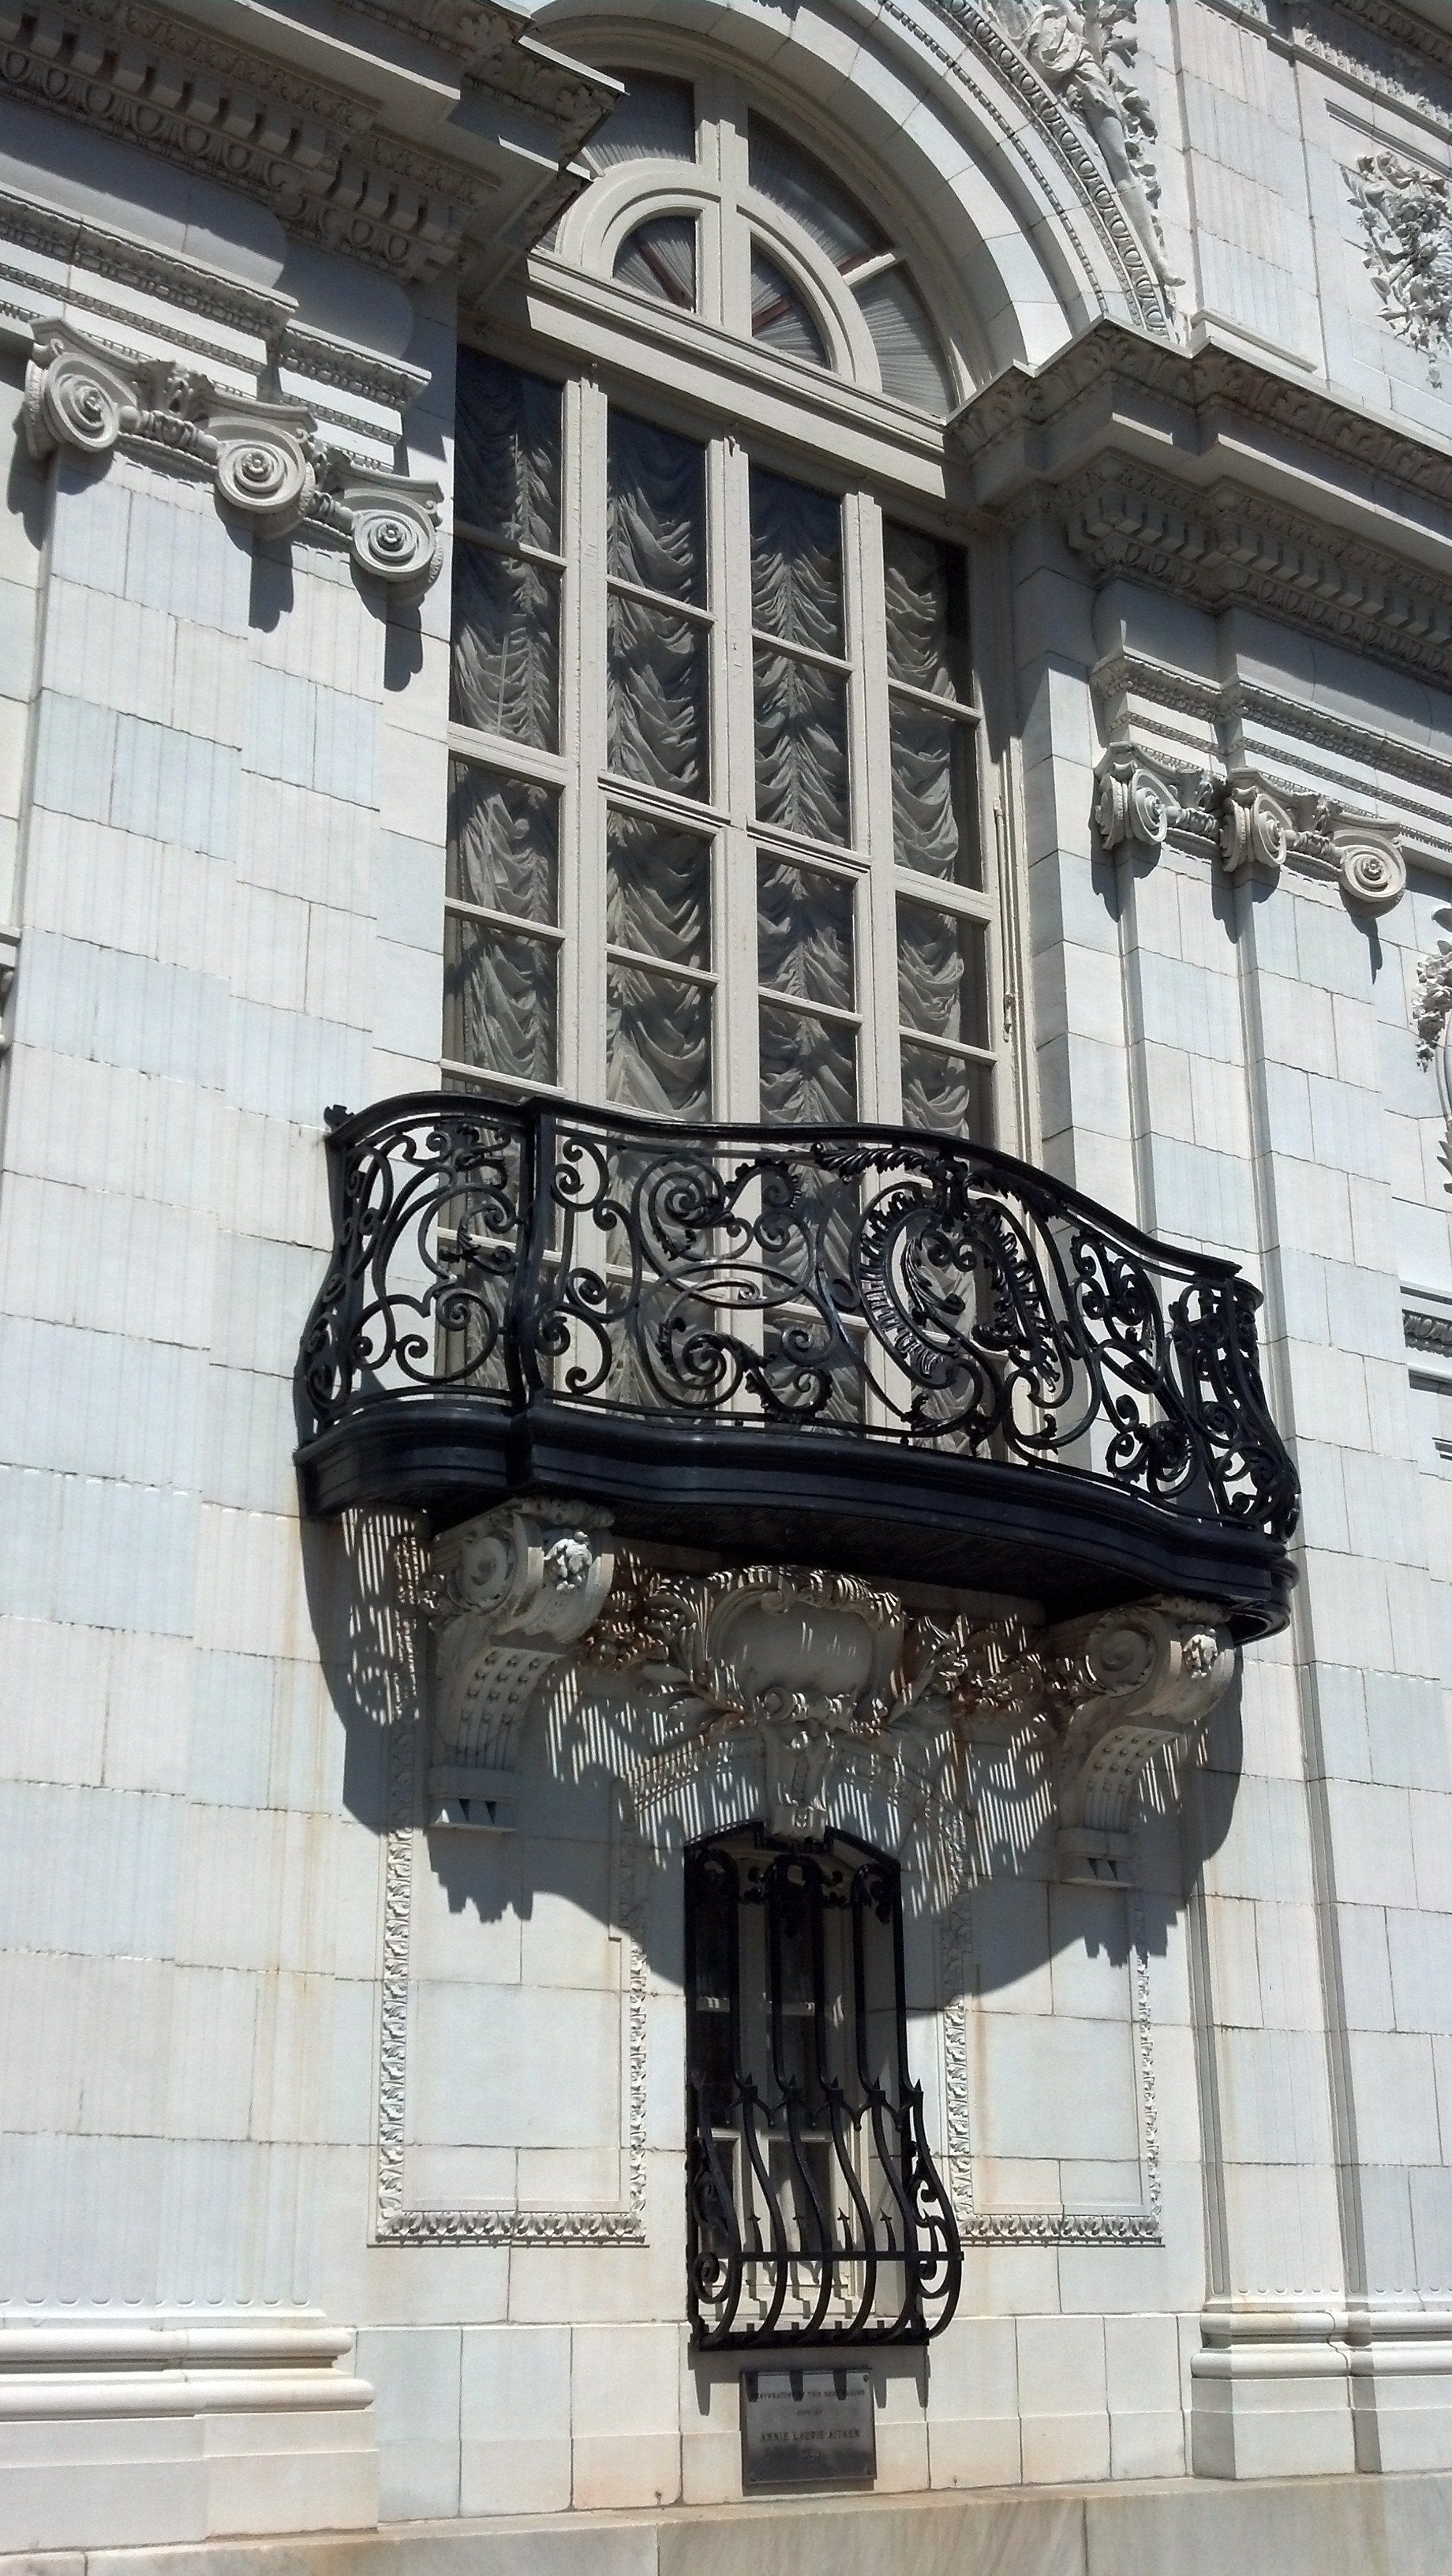 Rosecliff, detail of the Juliet balcony off the staircase.